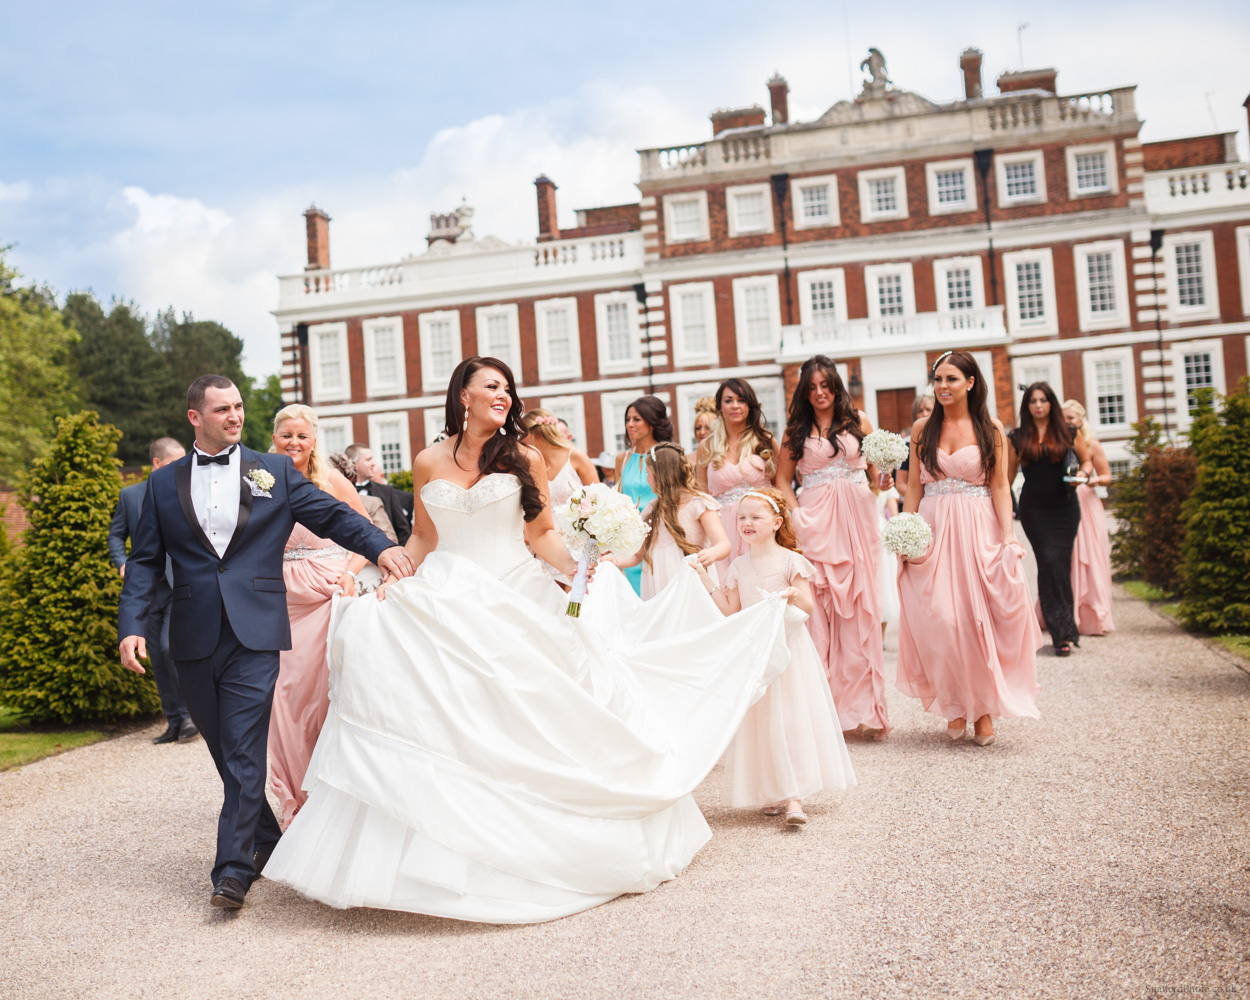 A bride and her groom walk from Knowsley Hall to the gates with their grand bridal party in tow